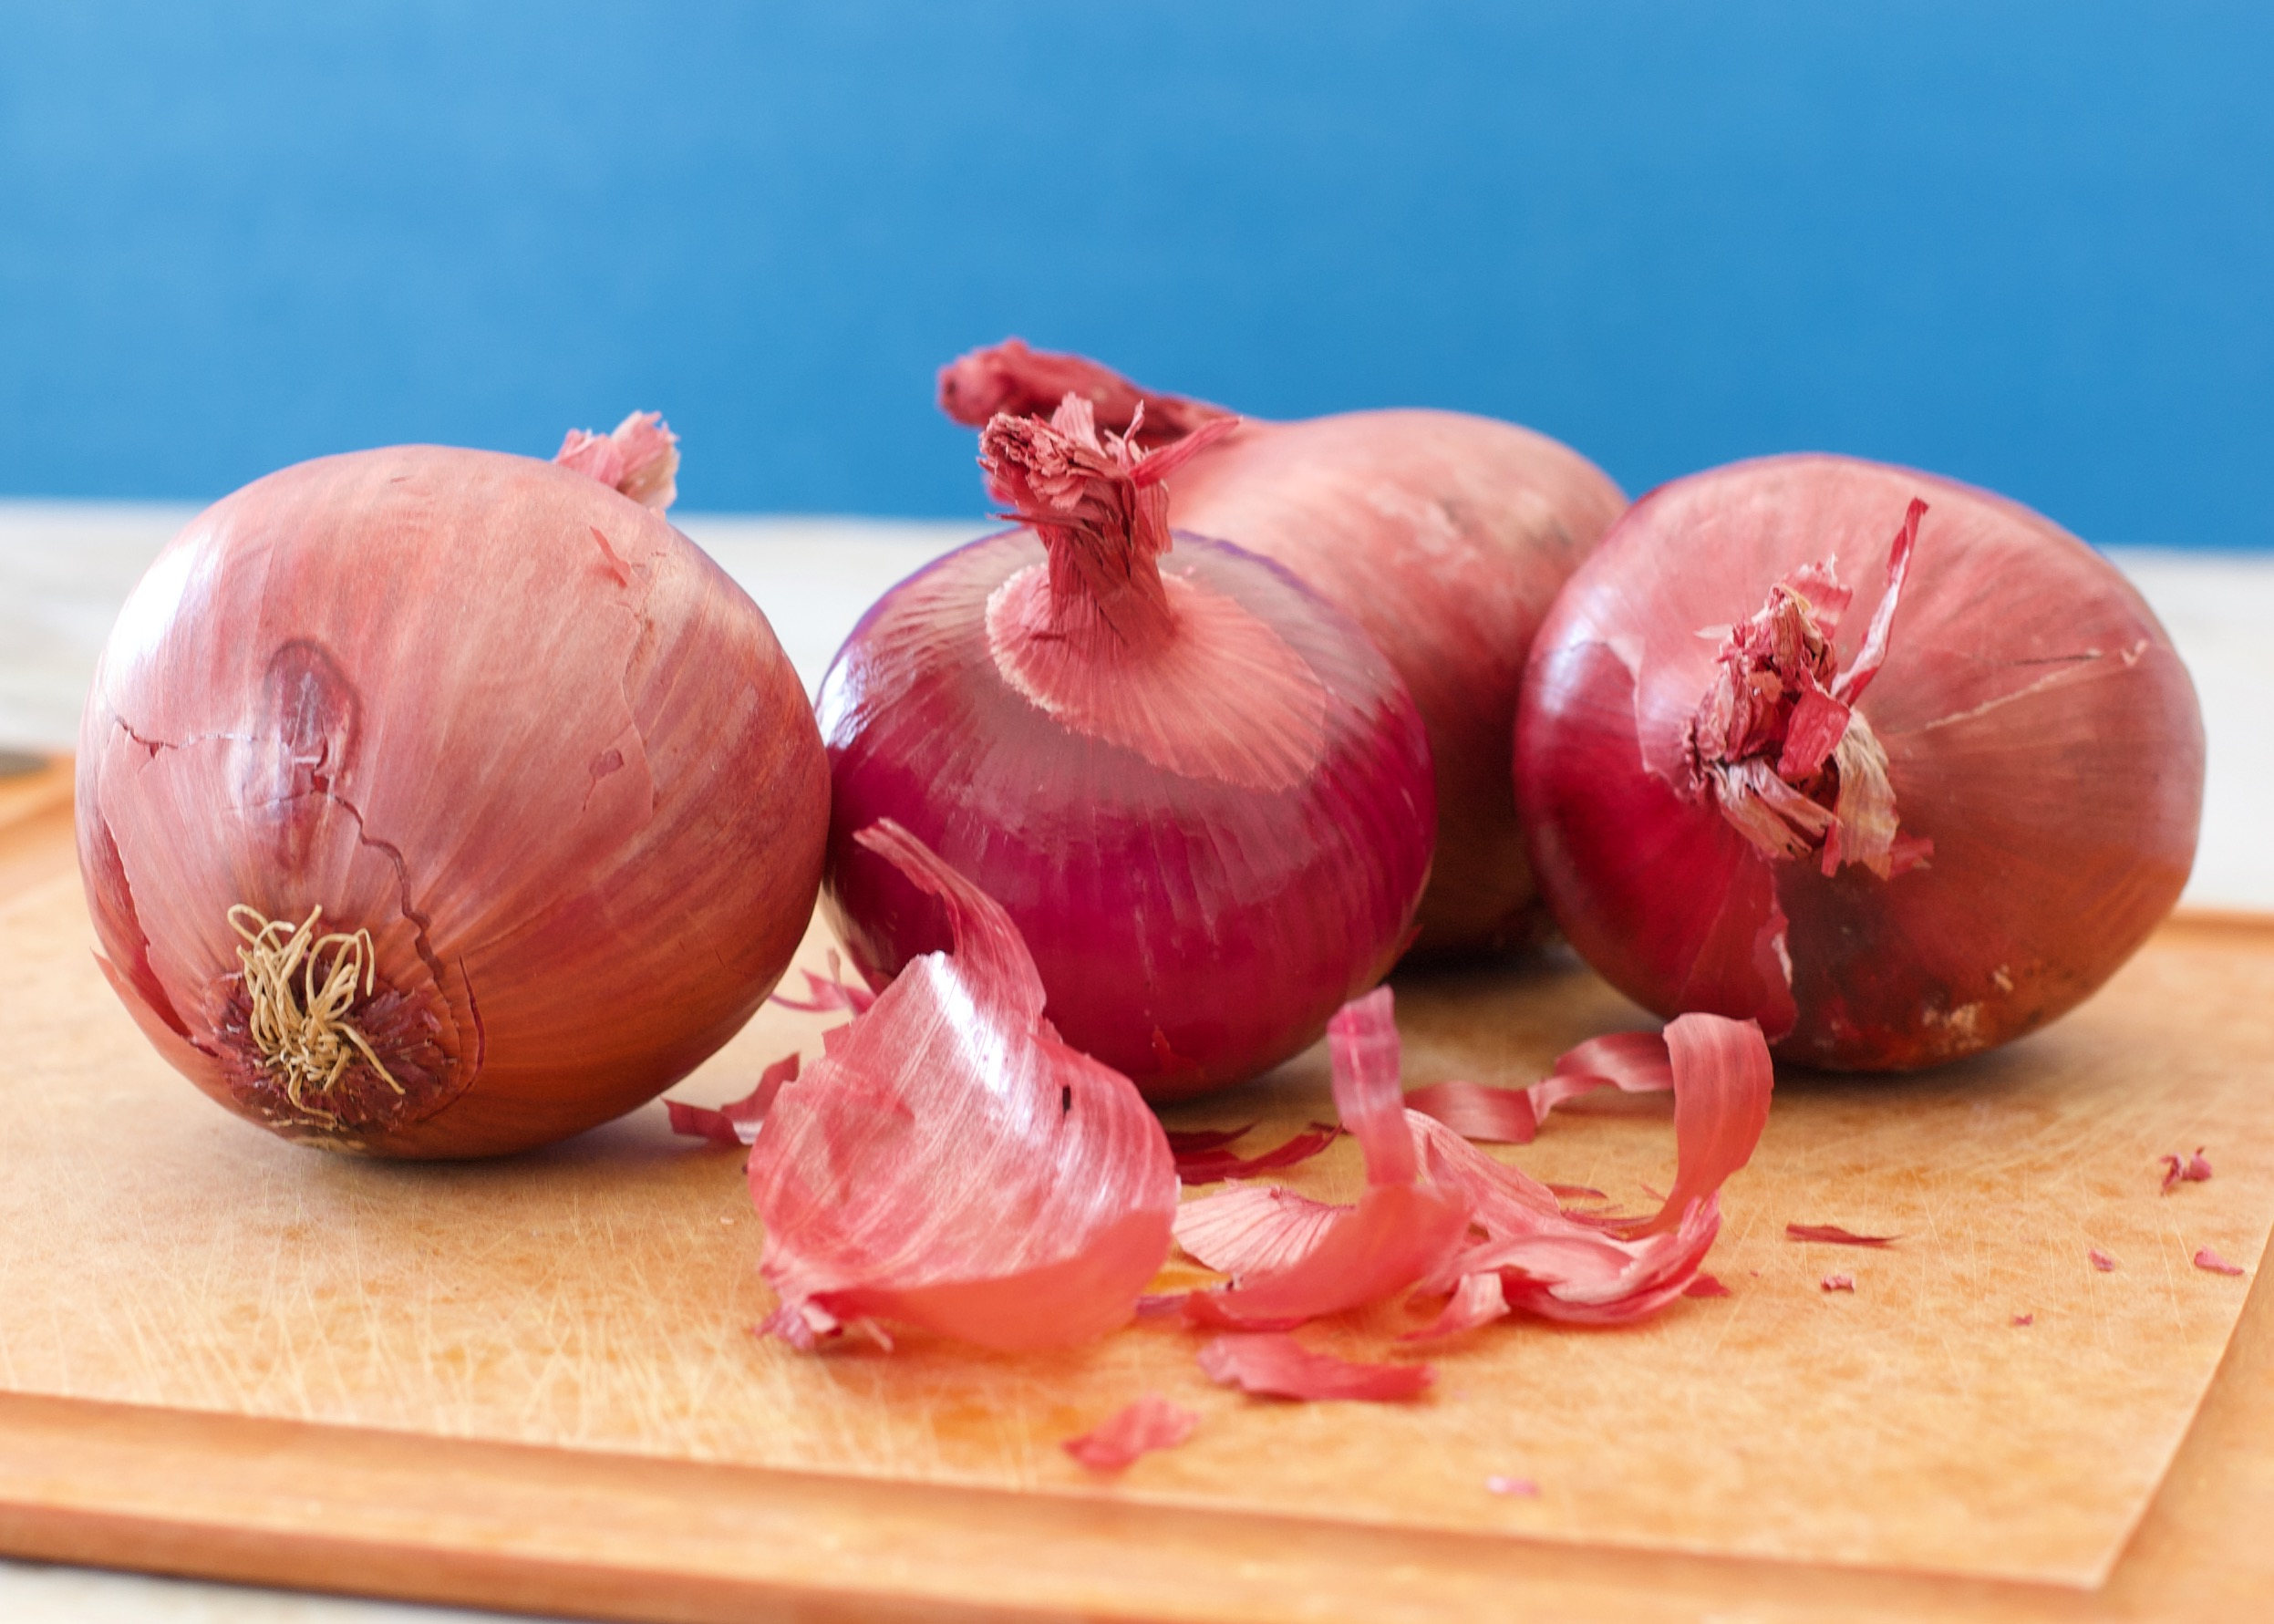 Onion peels: 7 benefits and 6 uses